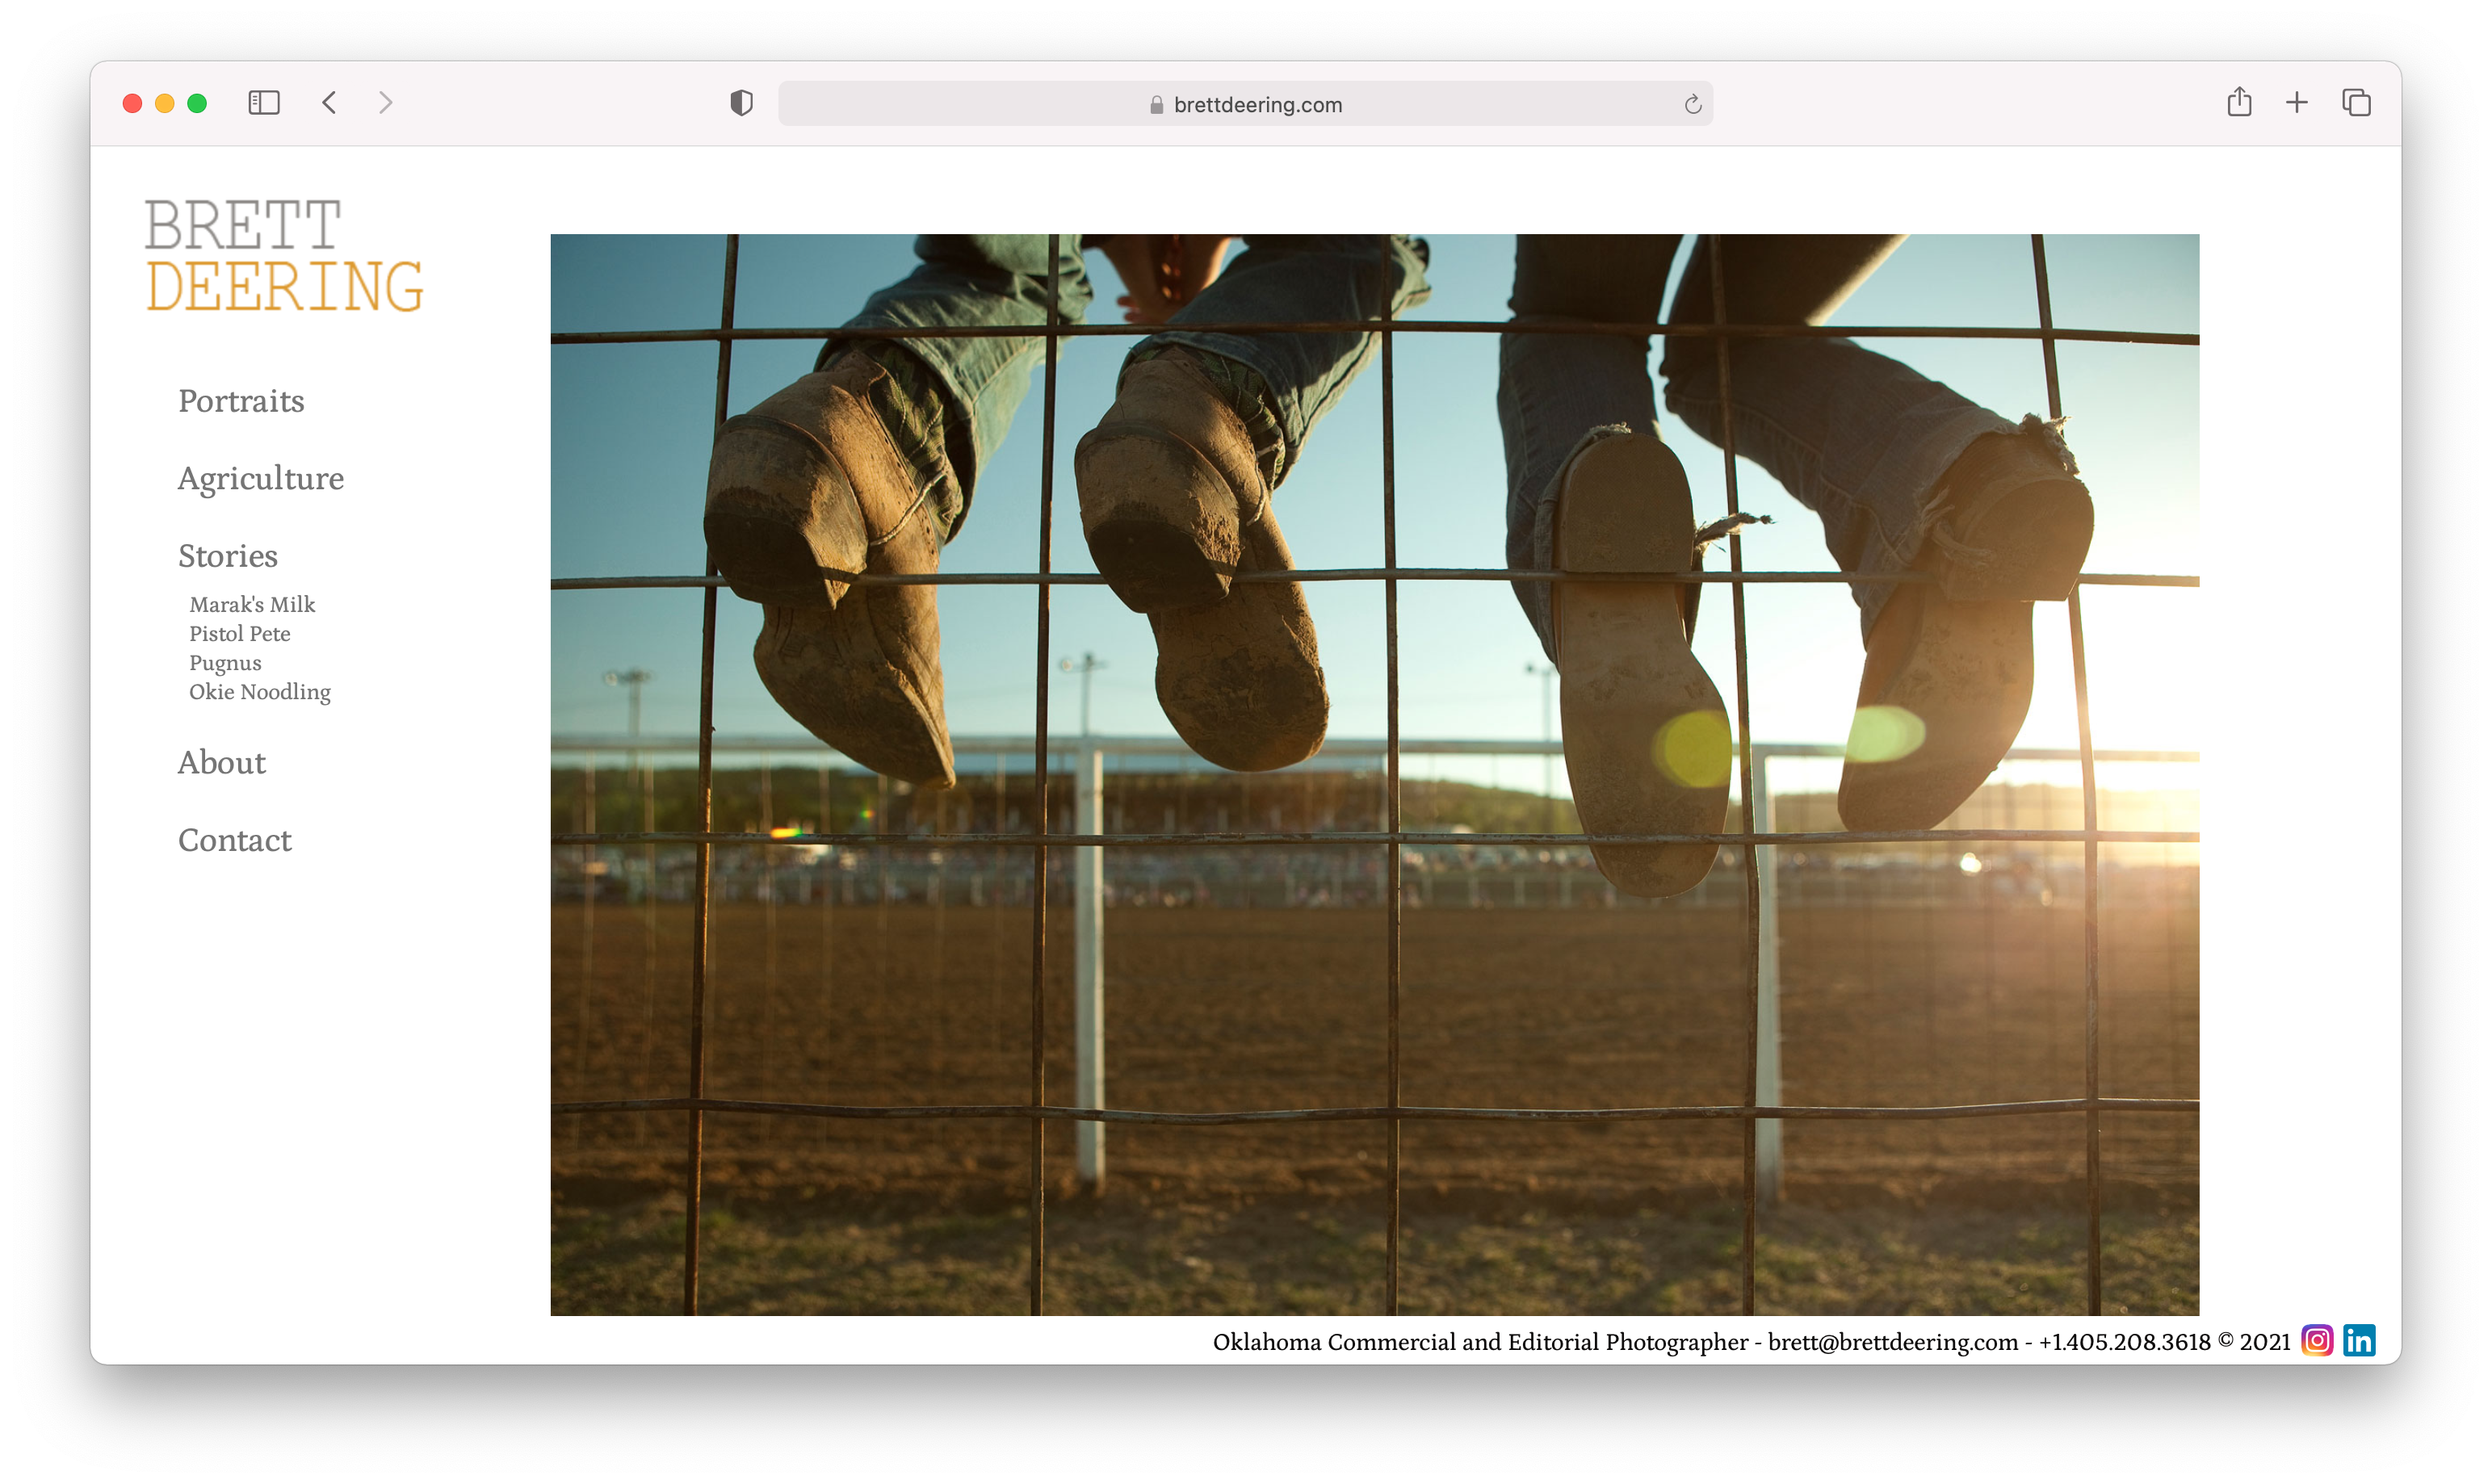 Brett Deering's Home page for Industrial photography